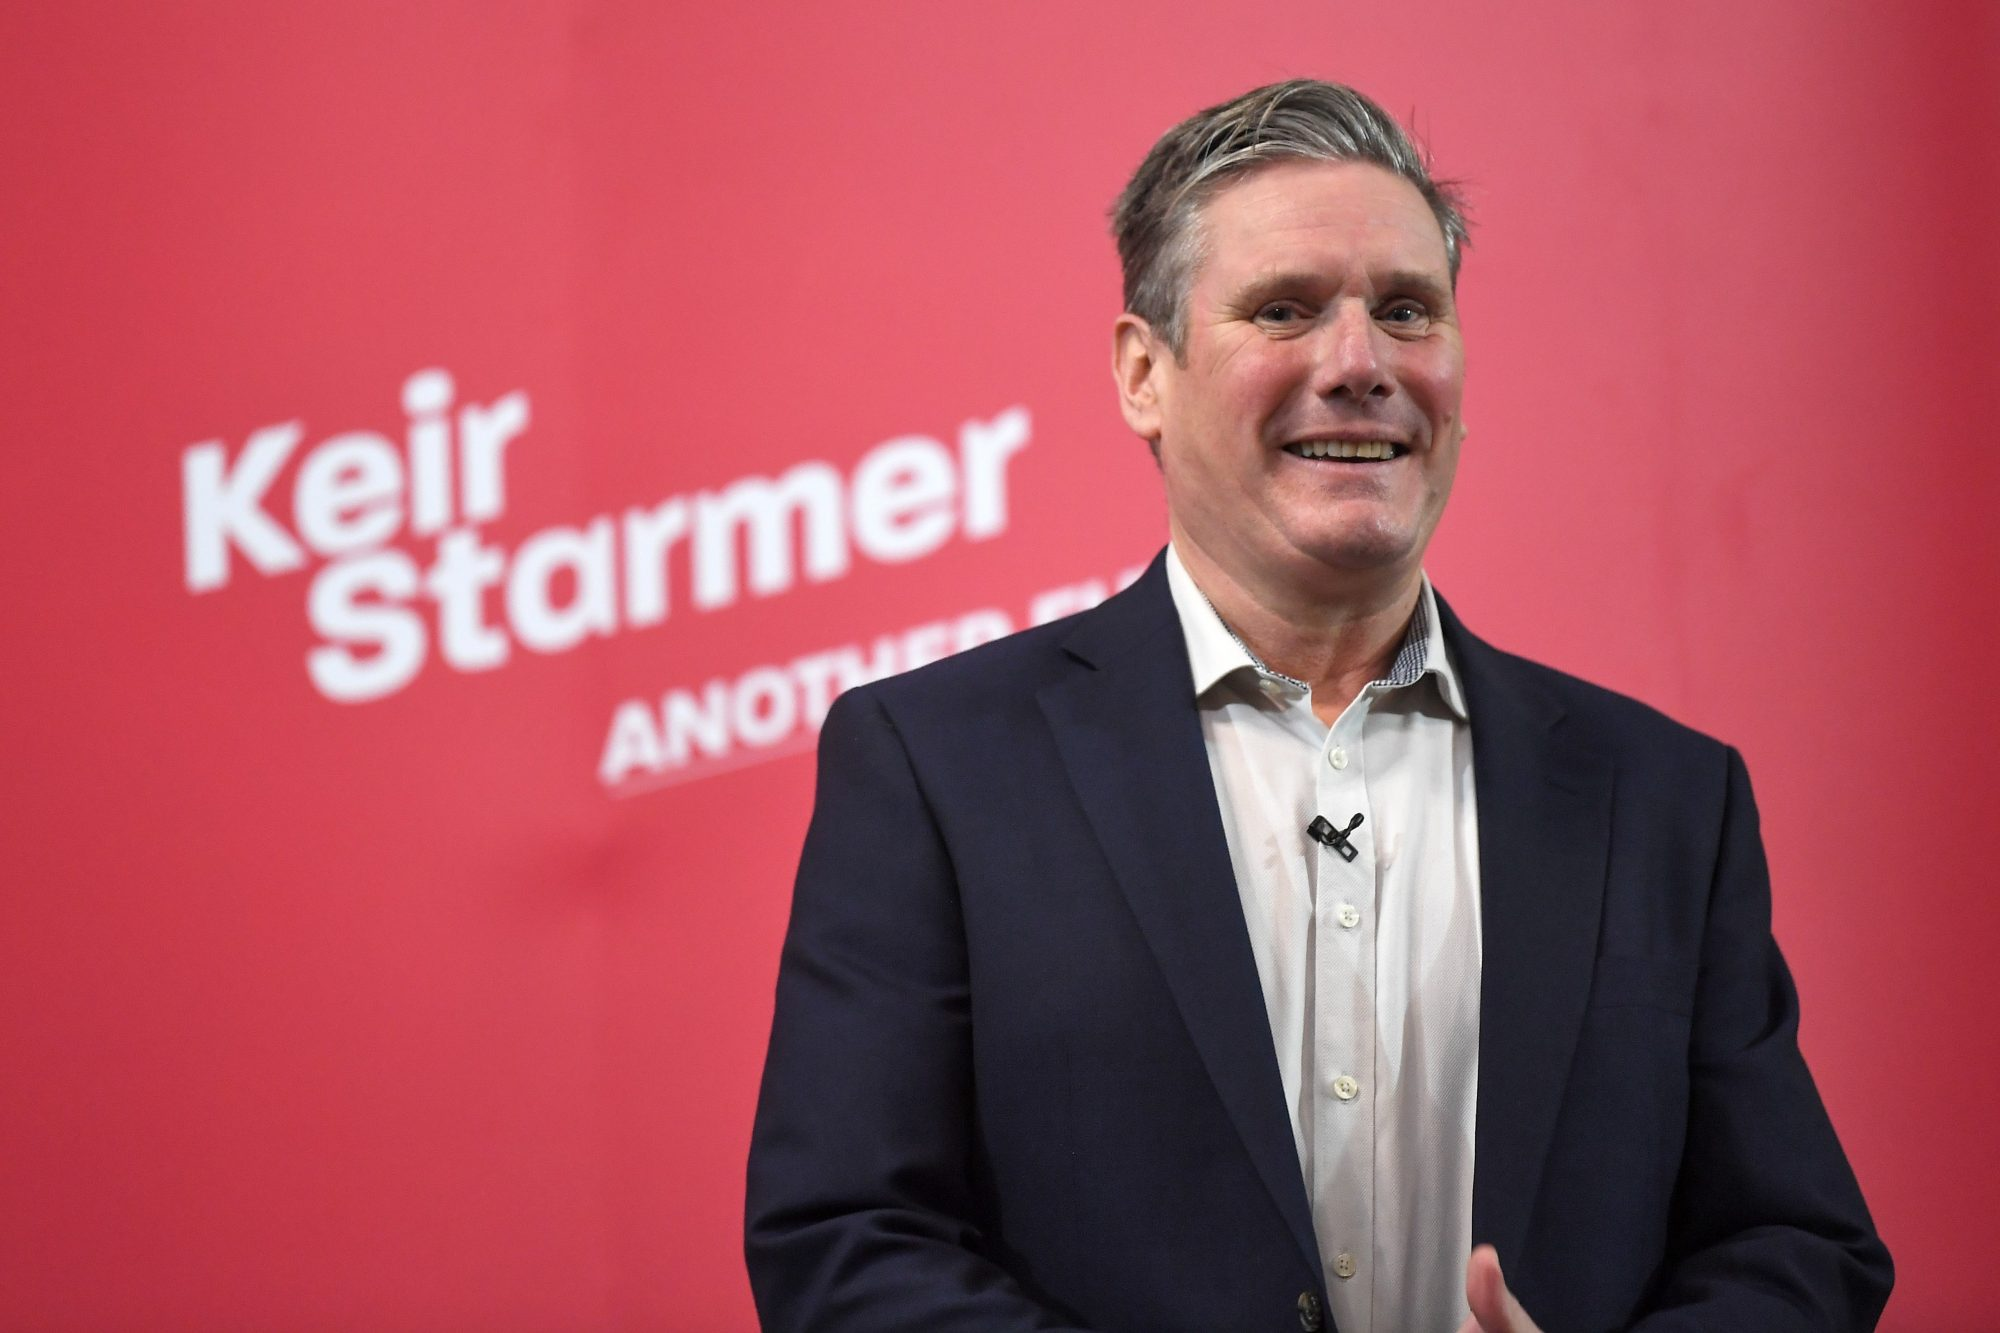 Keir Starmer storms Labour leadership contest - channel 4